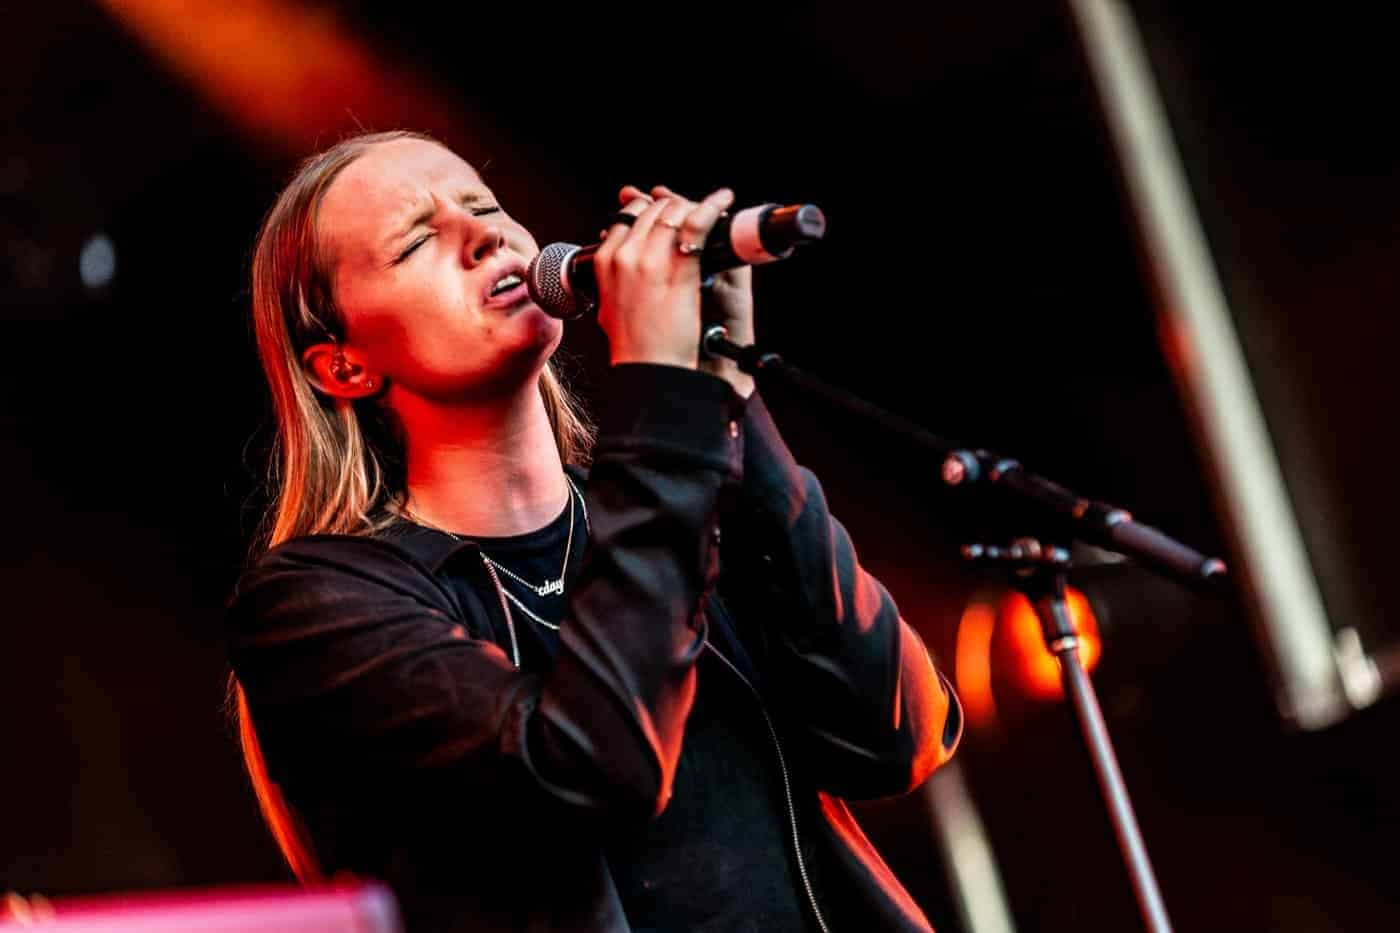 charlotte day wilson Mile Ex End Montreal